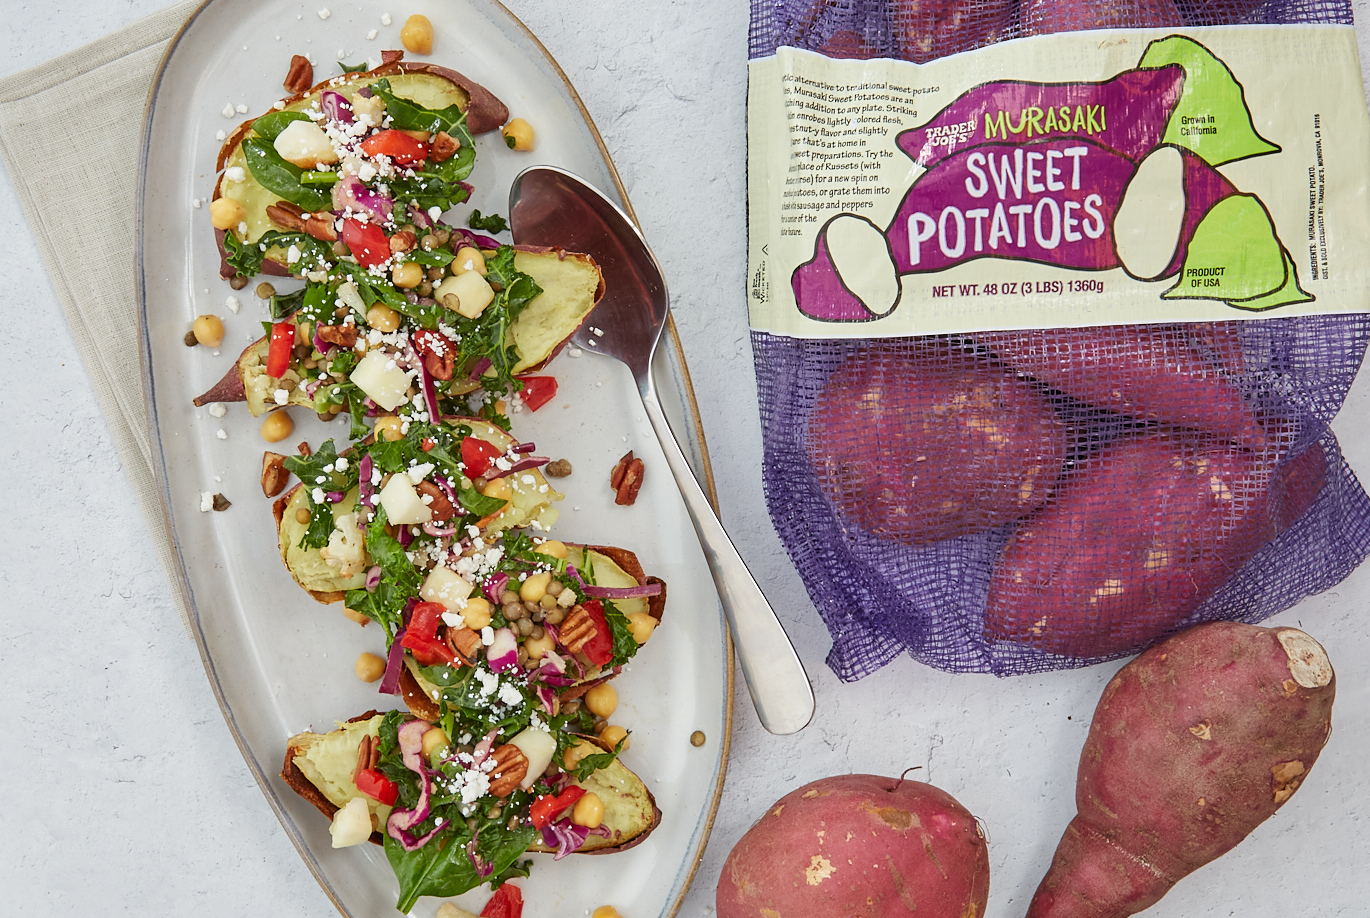 Recipe made with Trader Joe's Murasaki Sweet Potatoes, Lentil Palette Salad Kit and sprinkled with feta cheese